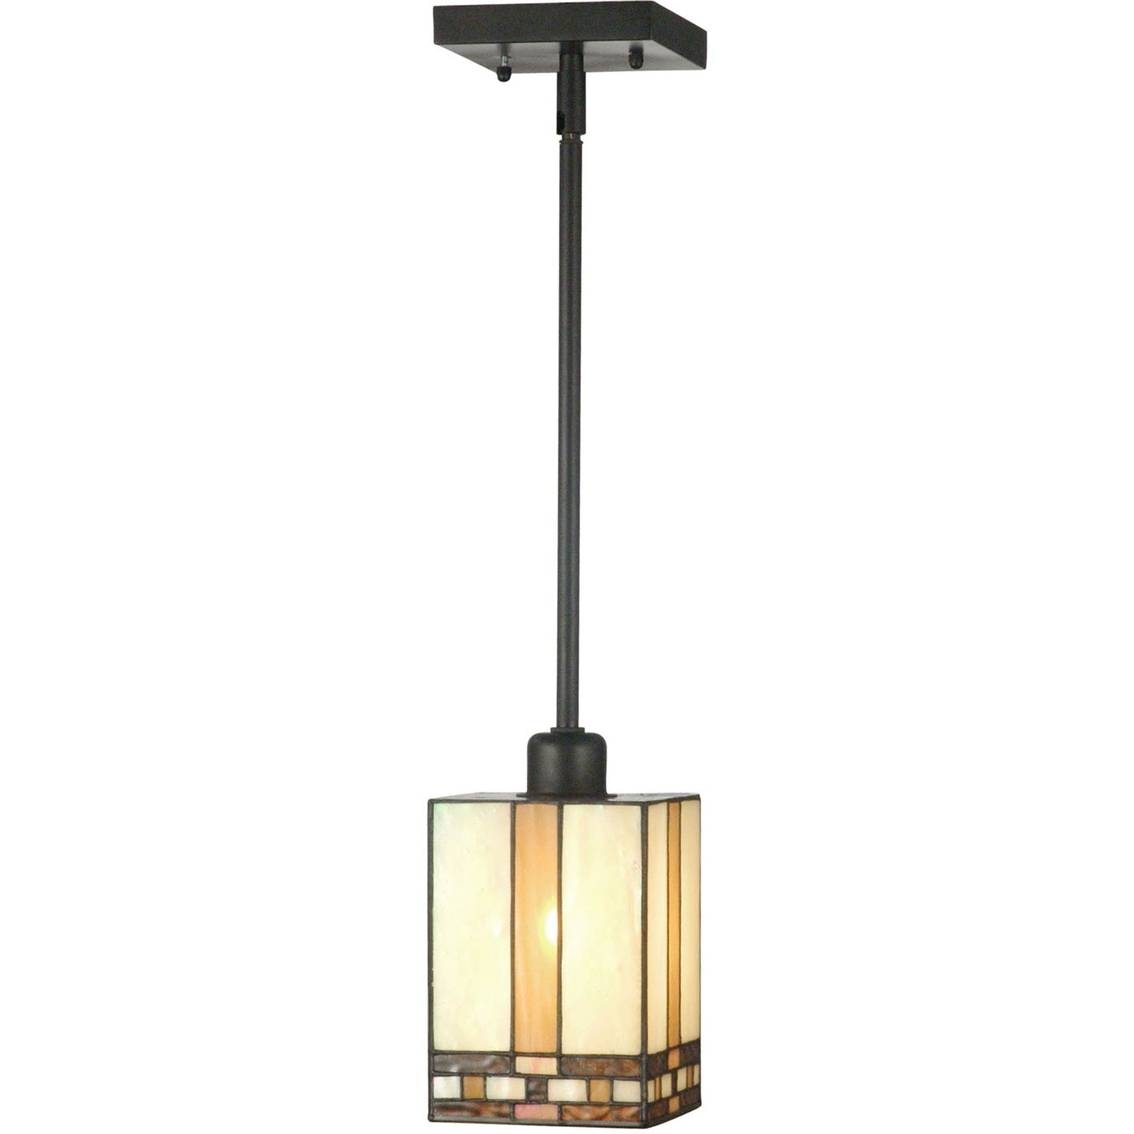 Dale Tiffany Mission Mini Pendant Lamp | Ceiling Lights | Home throughout Mission Pendant Light Fixtures (Image 3 of 15)